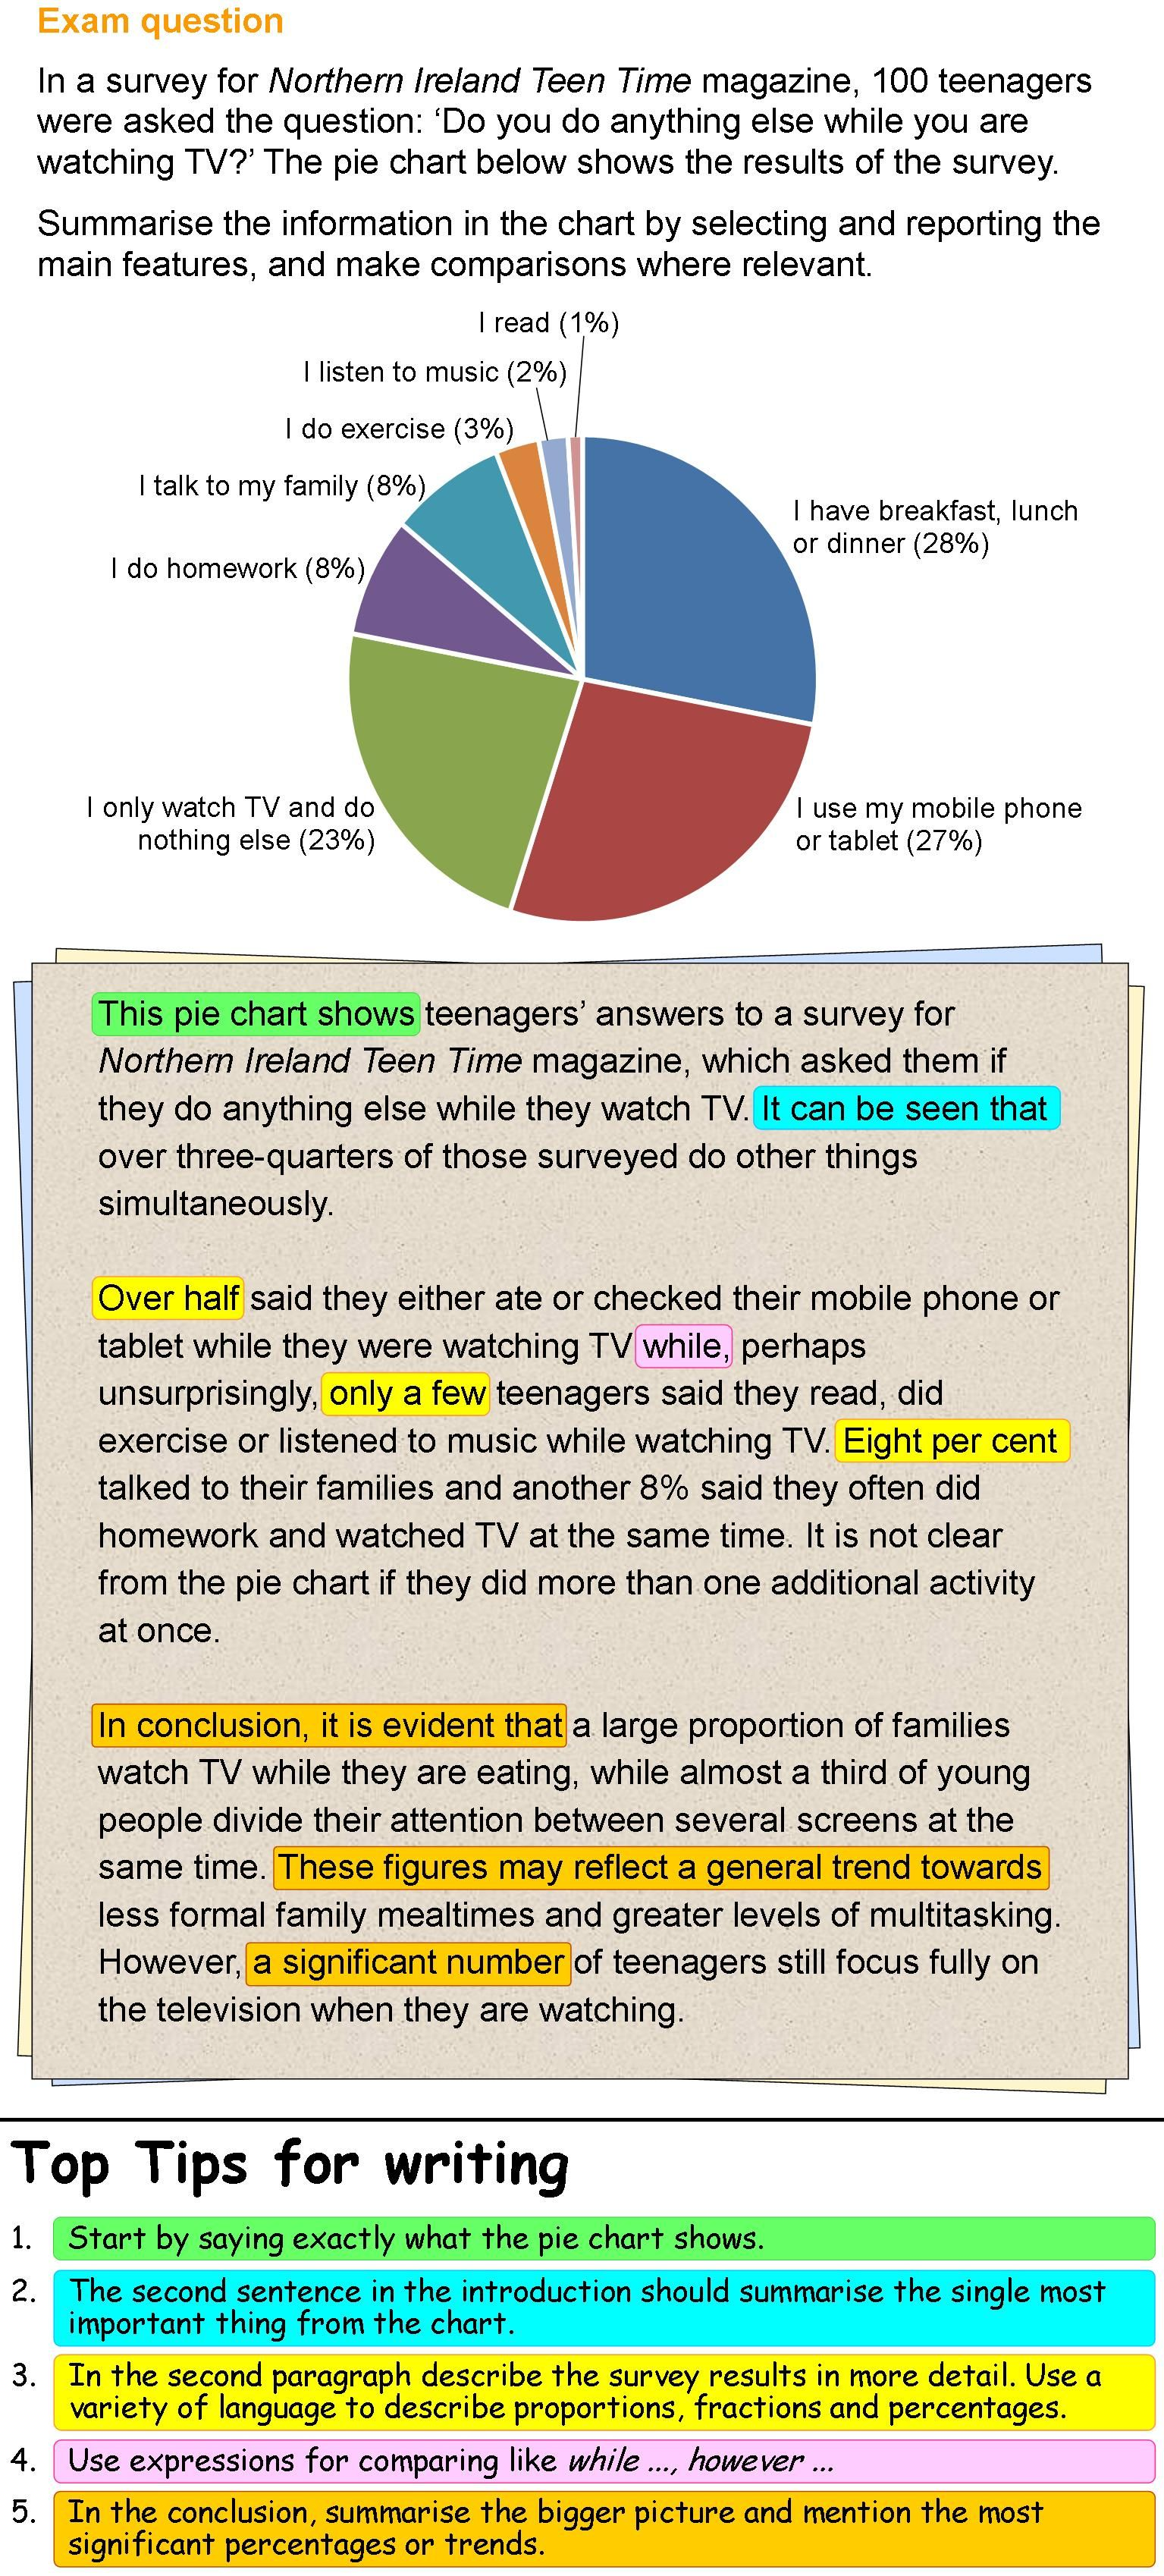 Writing About Survey Results Ielts Writing Ielts Writing Task1